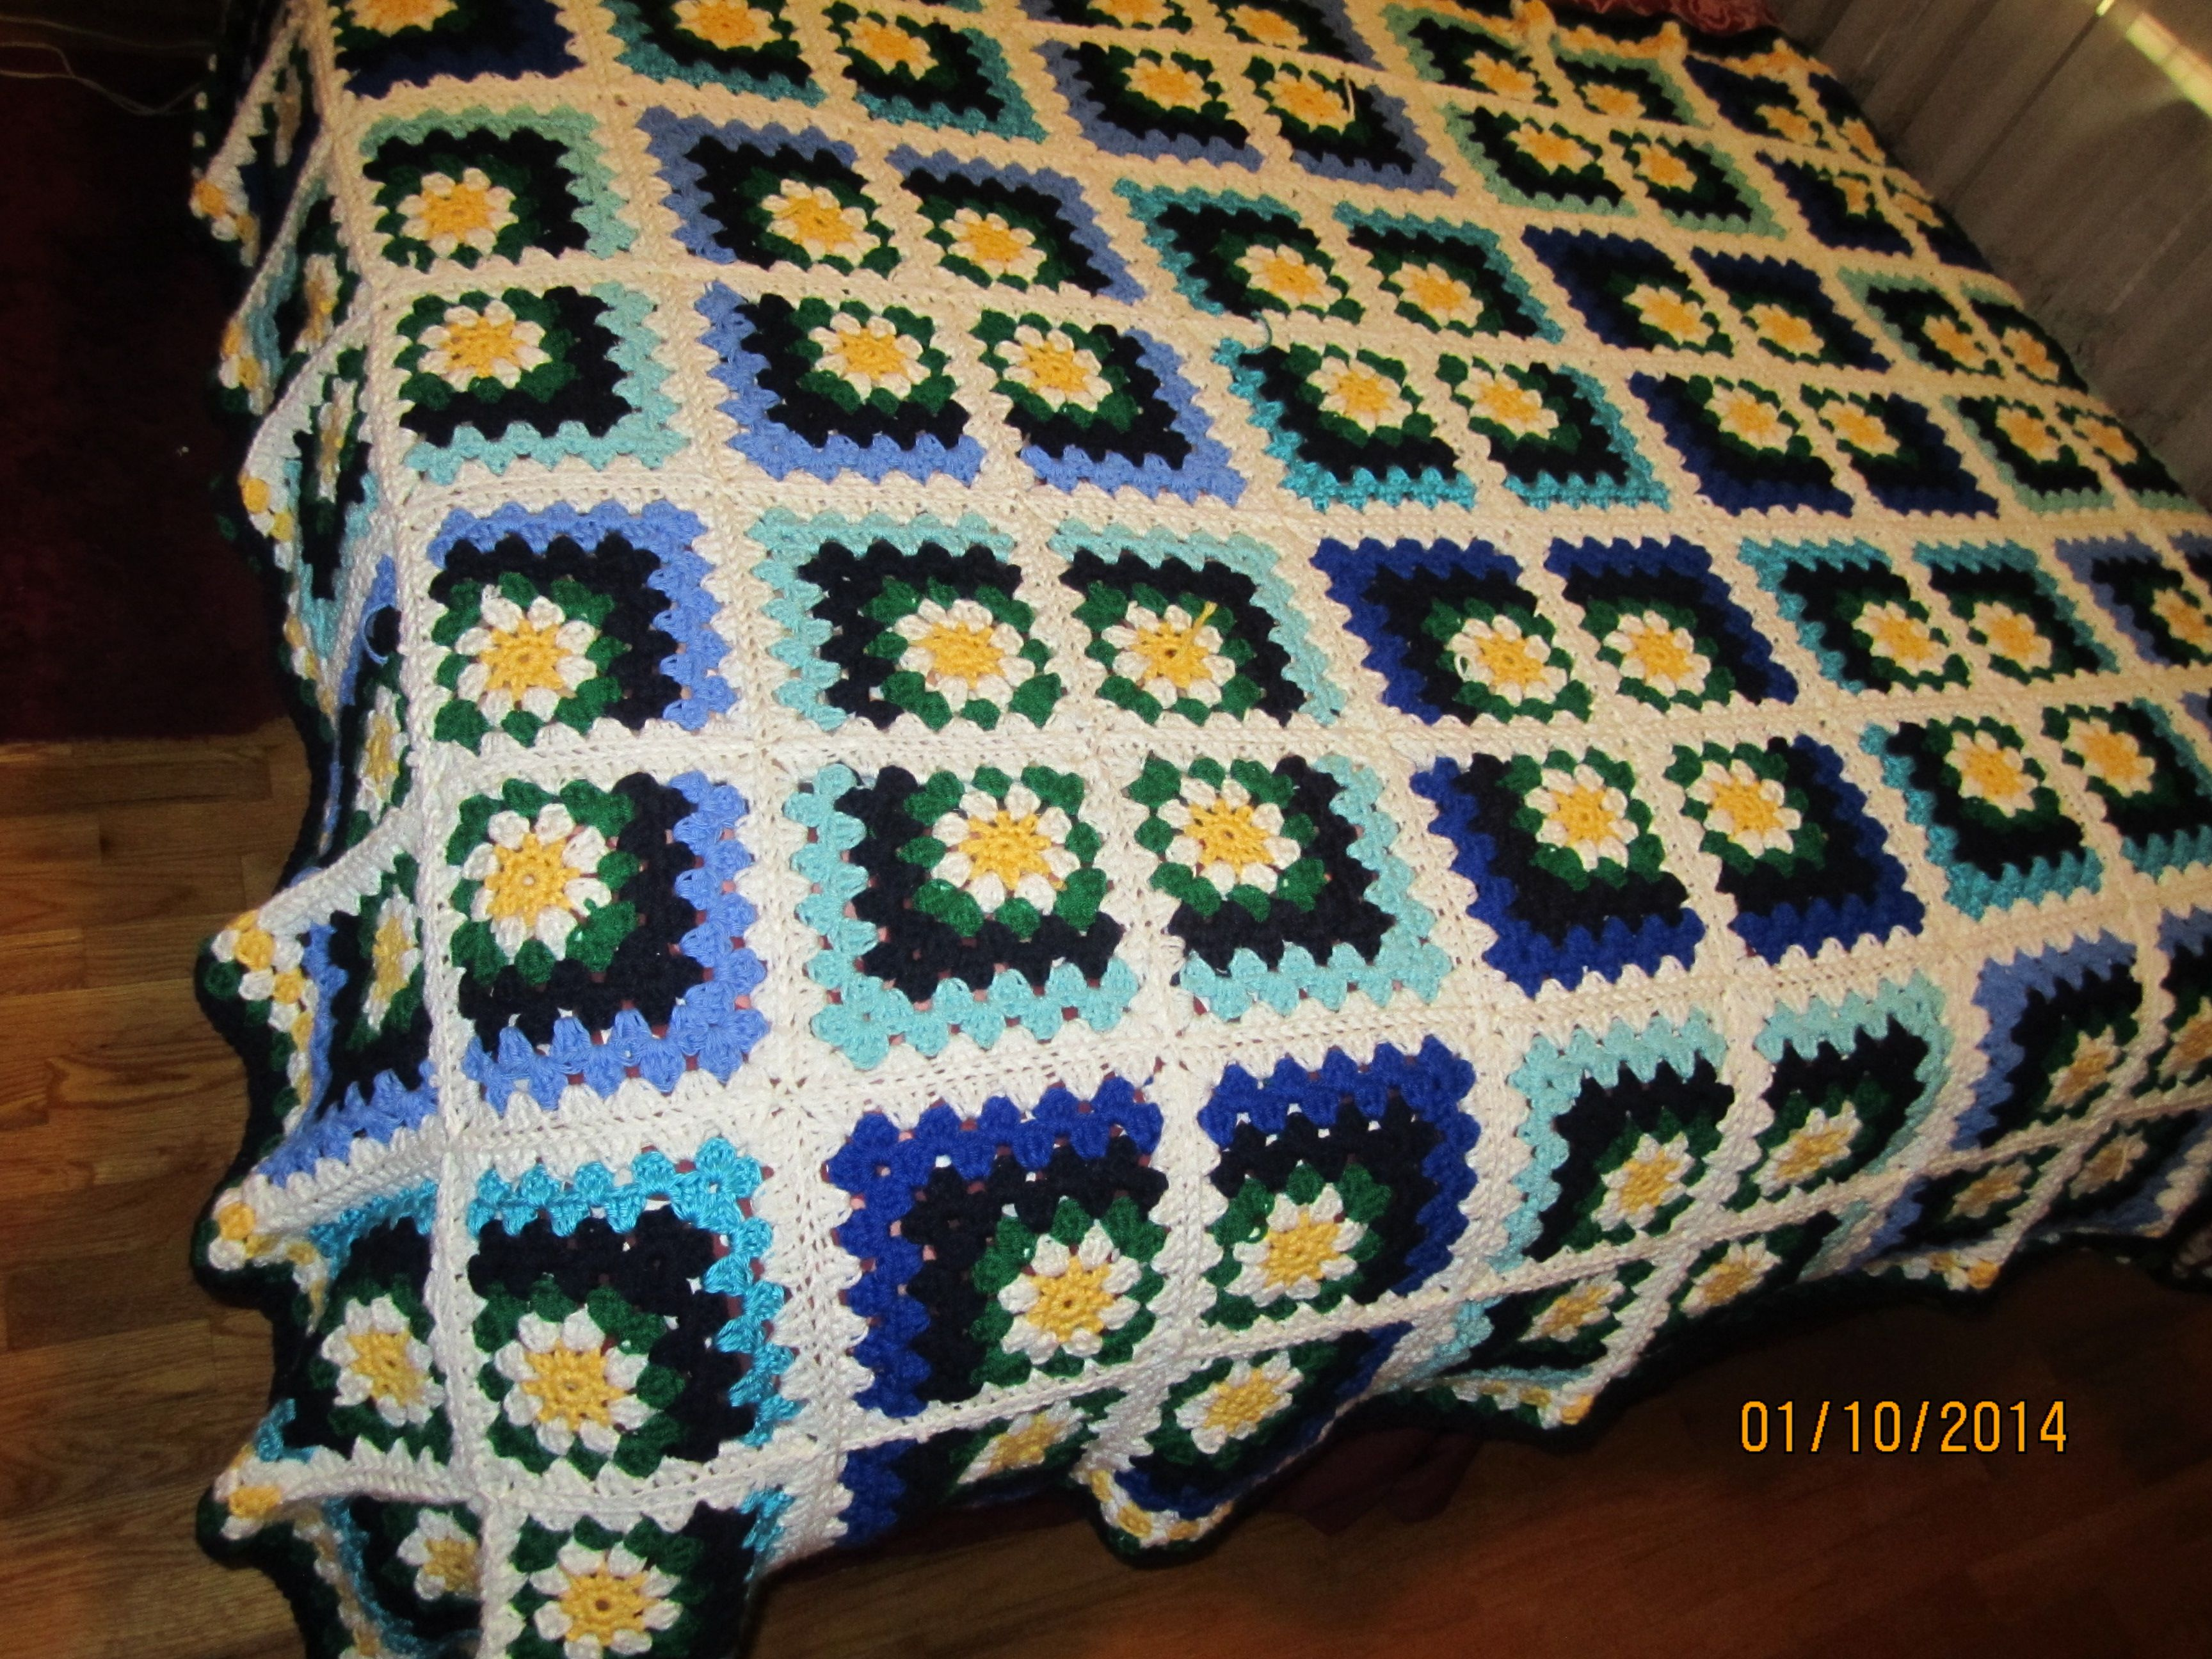 Daisy Mitered Granny Square Afghan | My Own Crafts | Pinterest ...